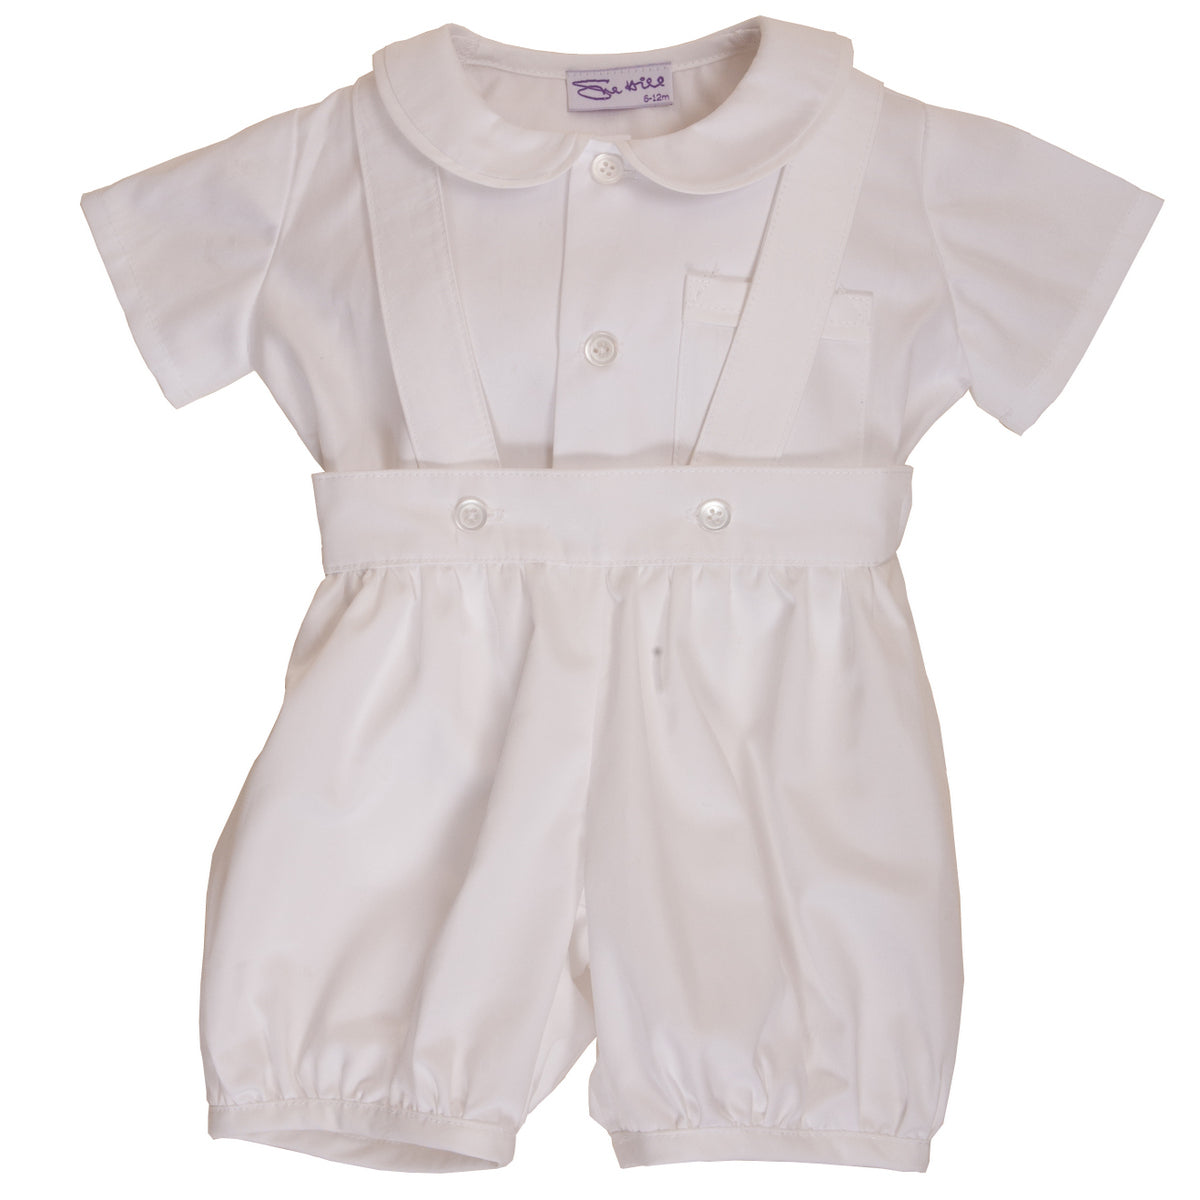 Sue Hill baby  boy christening baptism romper set white